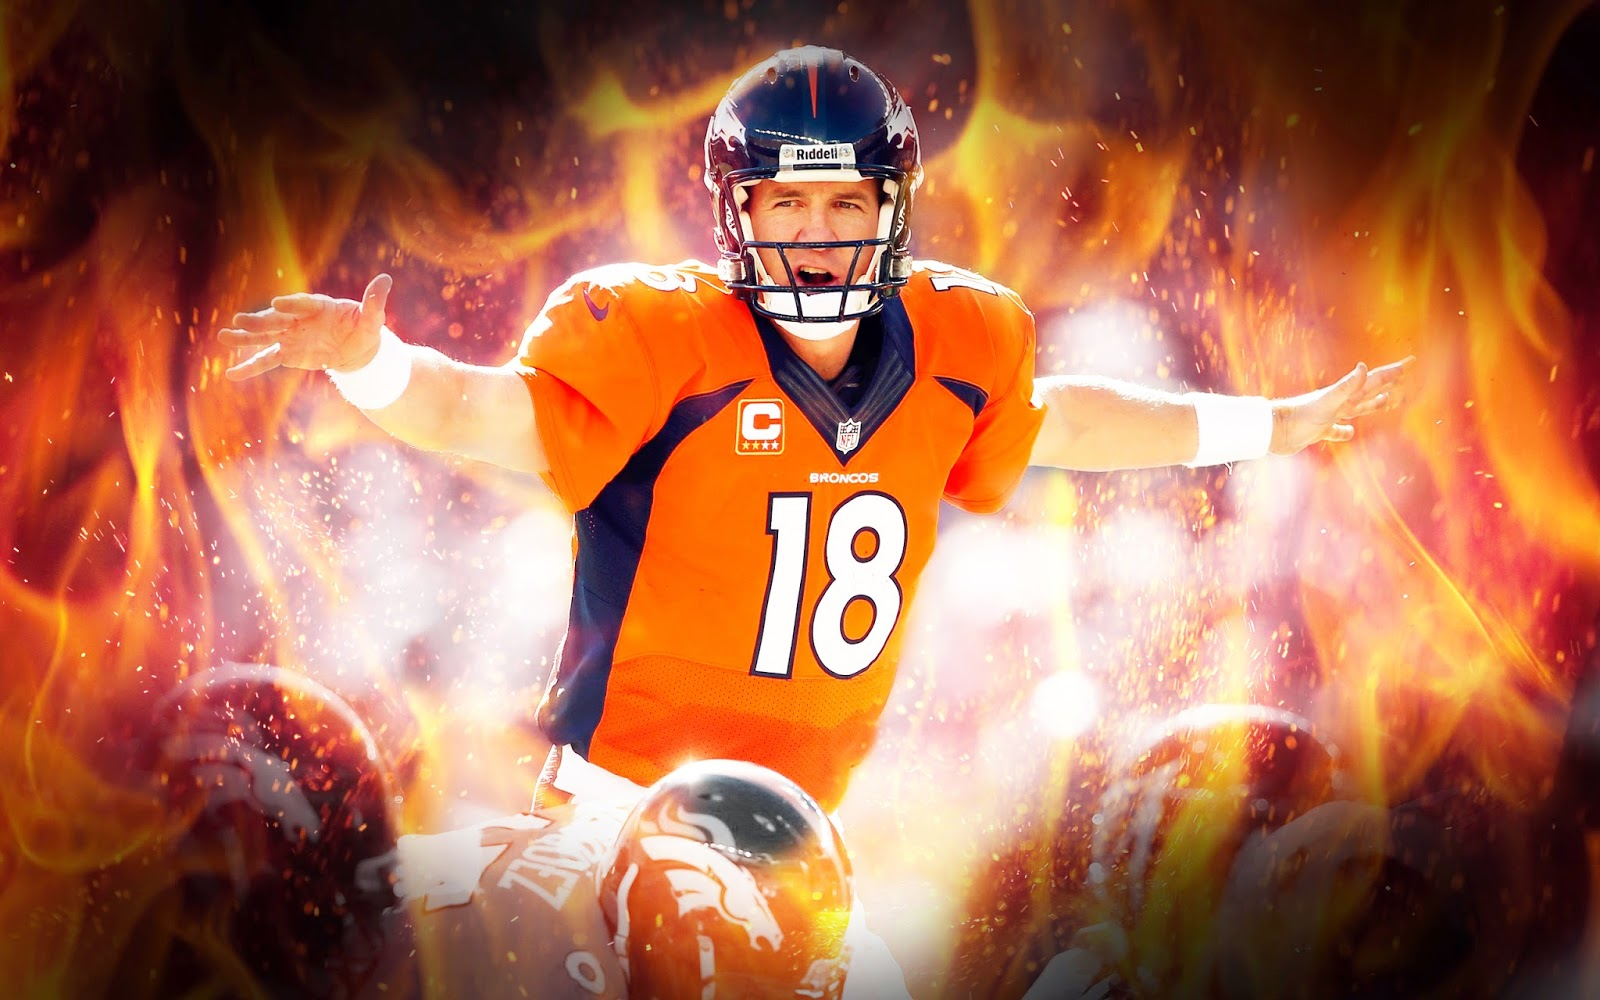 Wallpapers Backgrounds More New Peyton Manning Wallpaper   Broncos 1600x1000